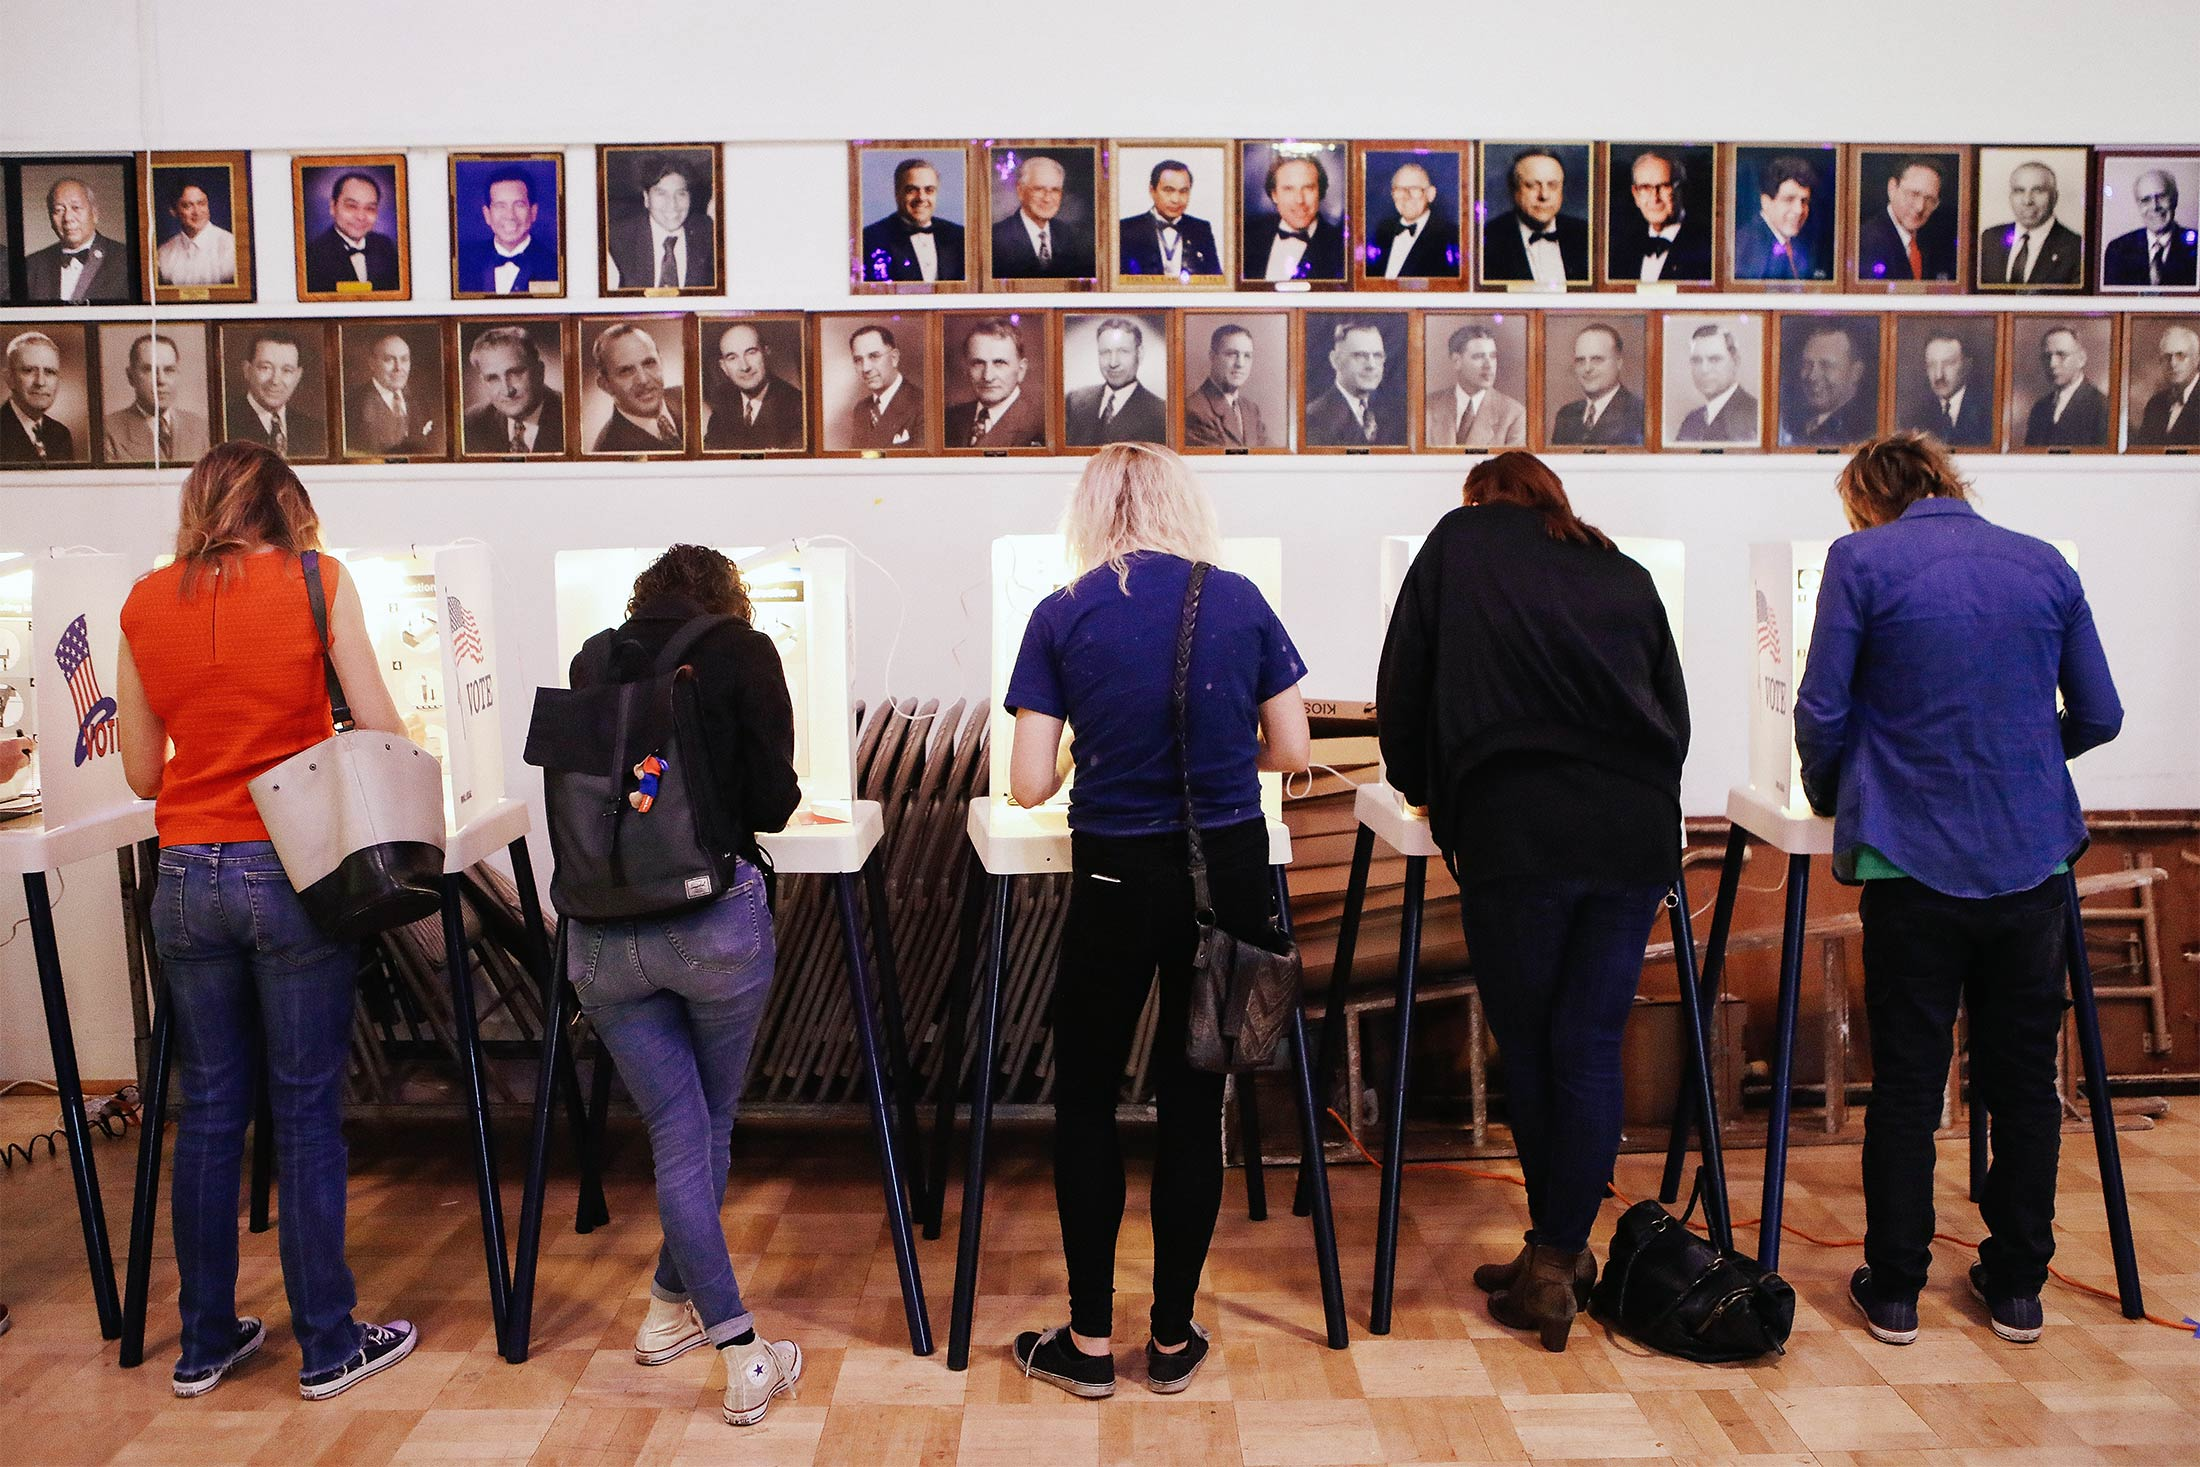 Voters cast their ballots at a Masonic Lodge on Tuesday in Los Angeles.